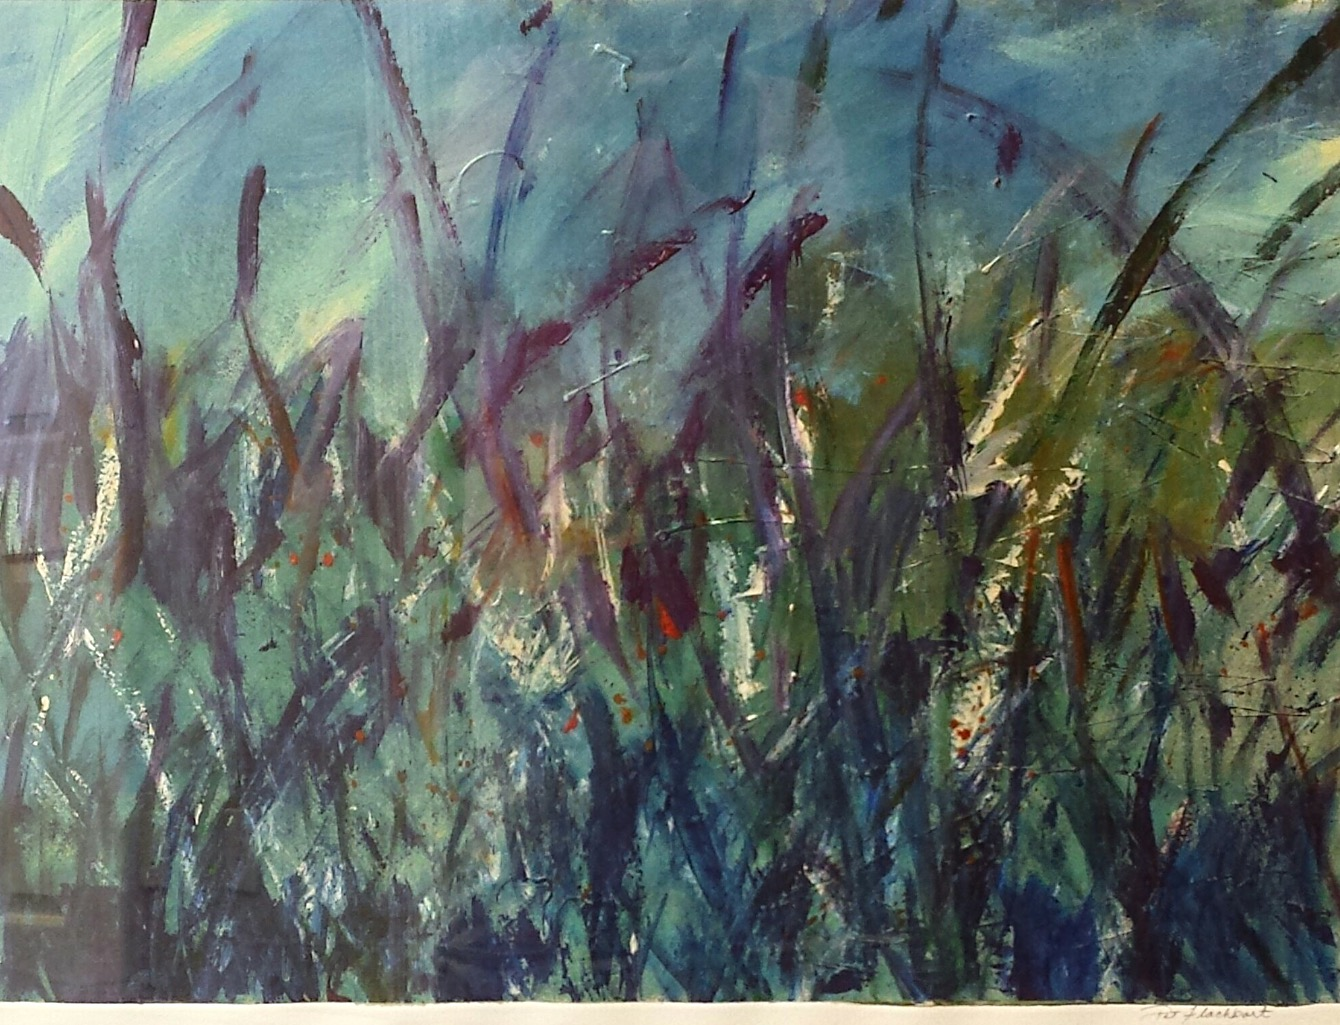 Stormy Seagrass